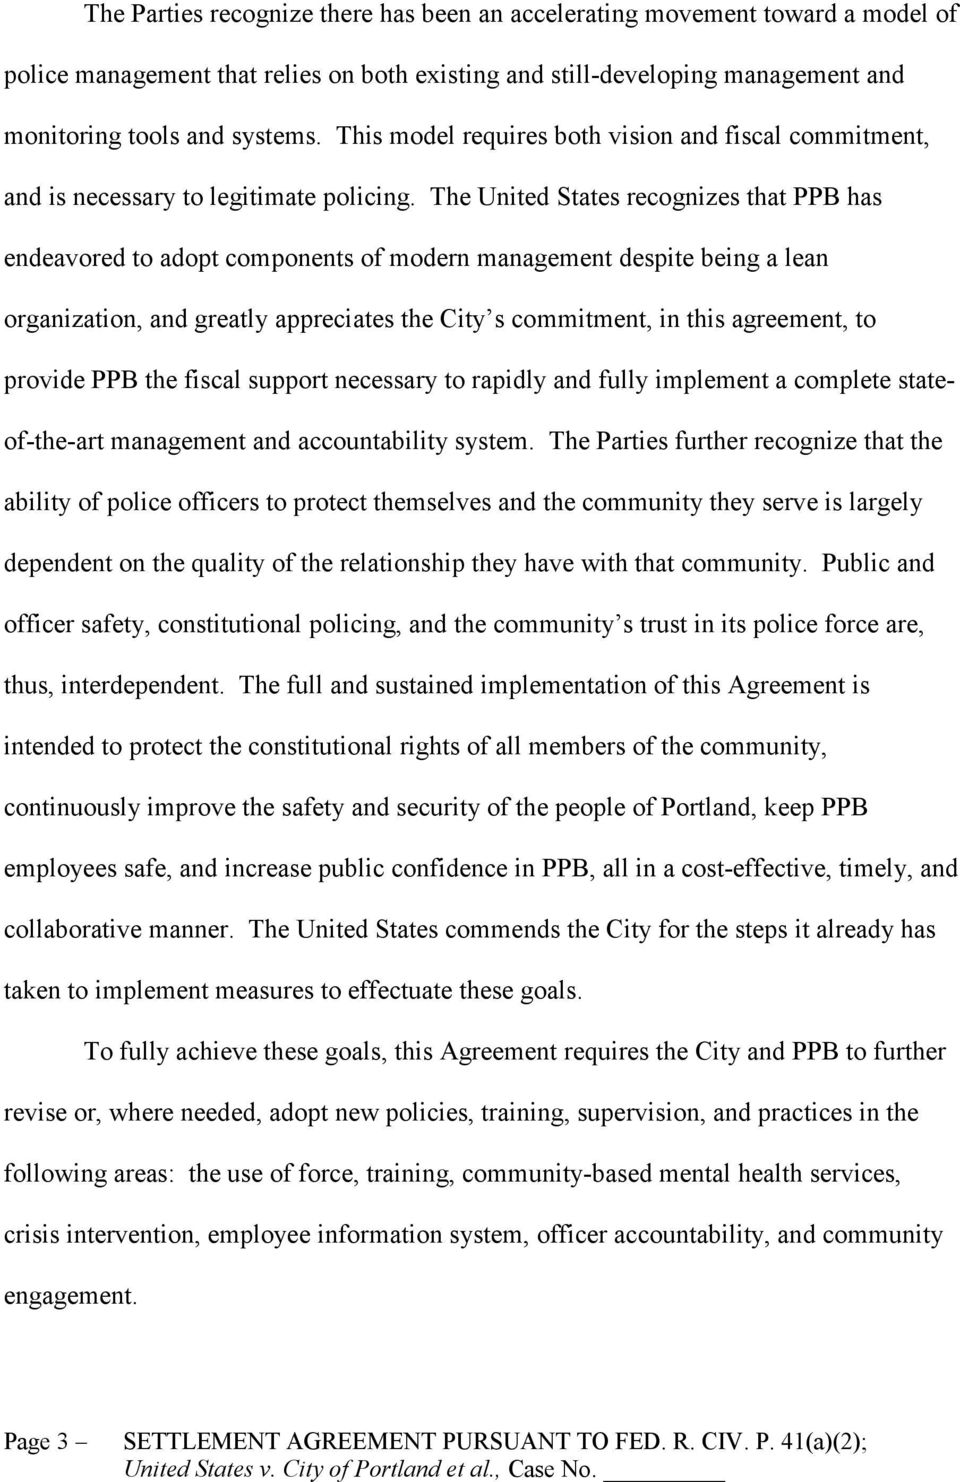 The United States recognizes that PPB has endeavored to adopt components of modern management despite being a lean organization, and greatly appreciates the City s commitment, in this agreement, to